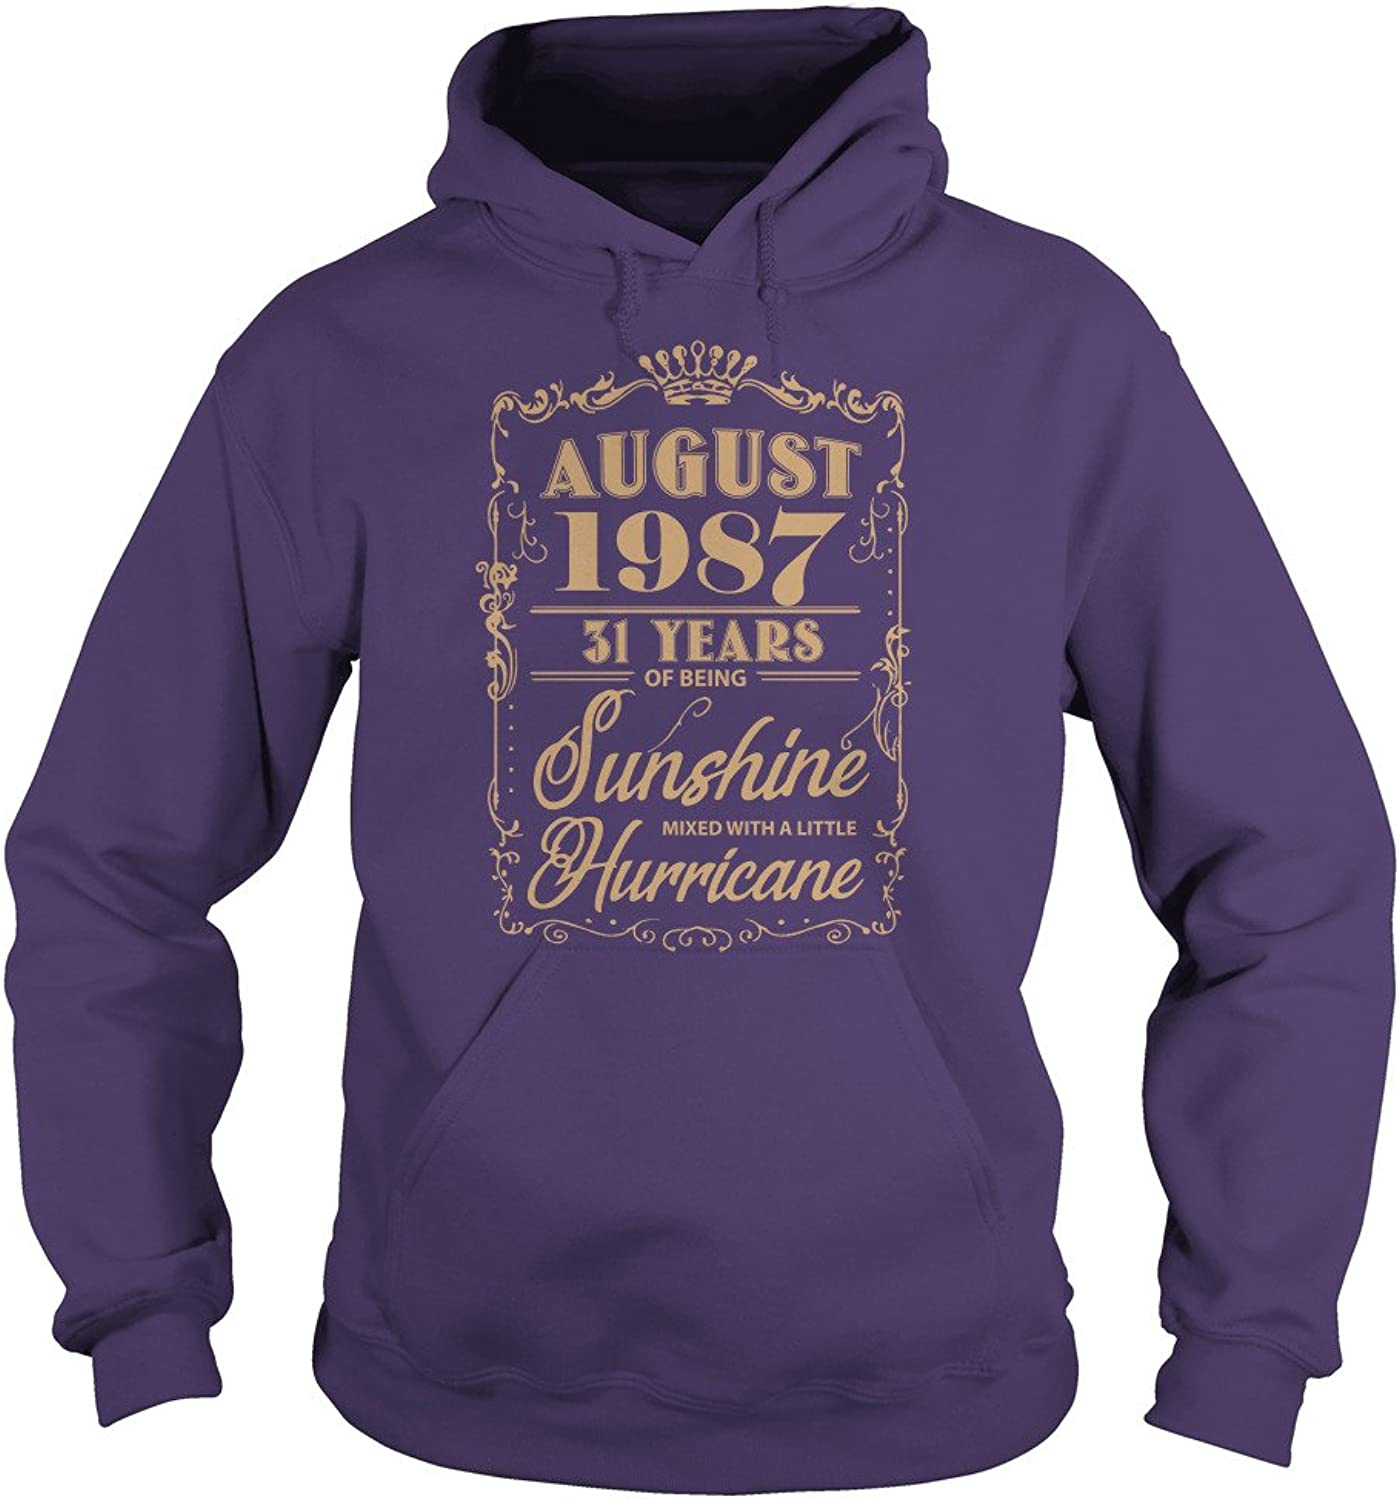 August 1987 31 Years of Being Sunshine Mixed with A Little Hurricane T-Shirt